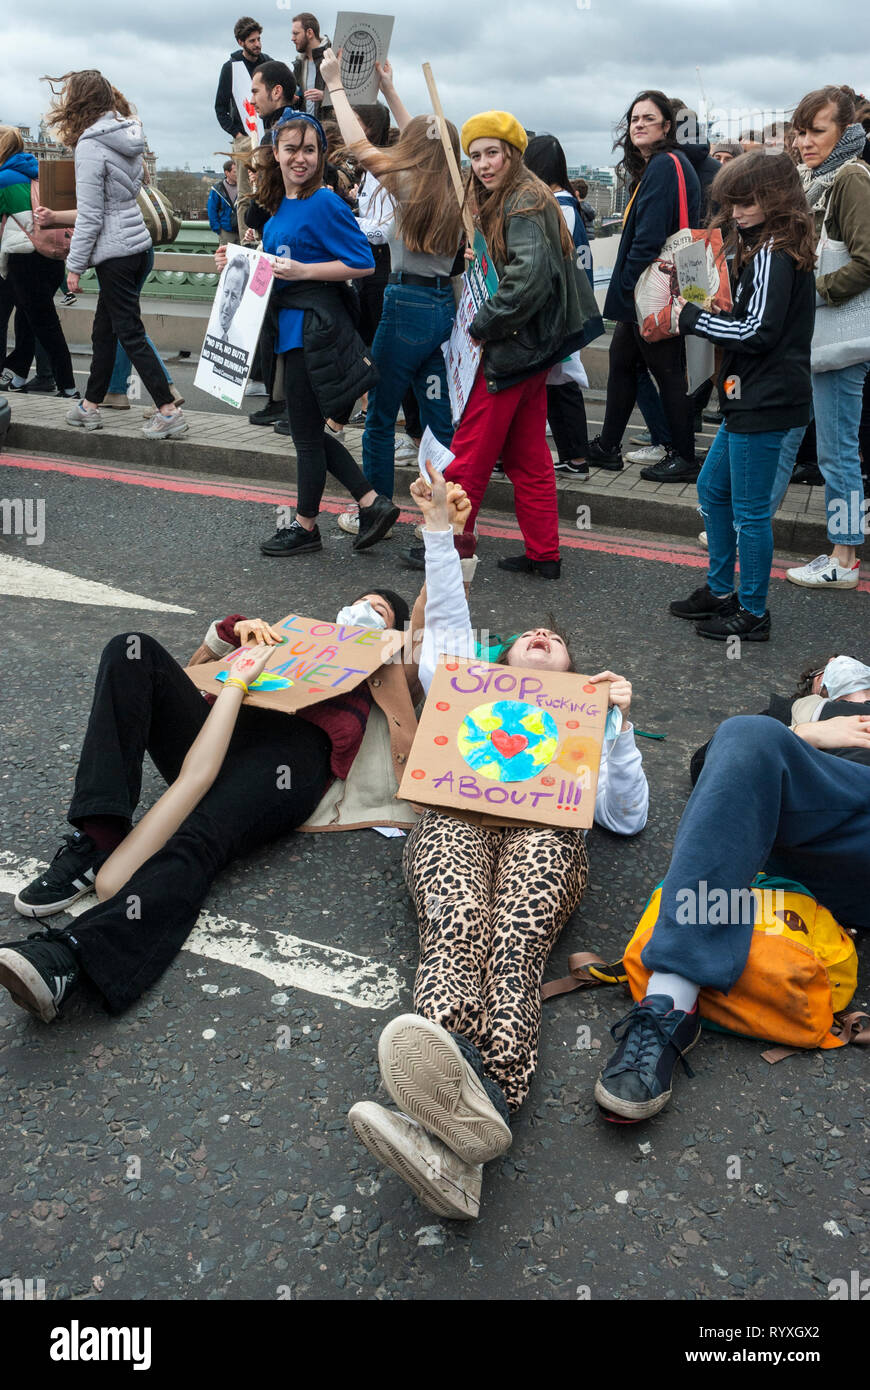 London, UK. 15th March, 2019. School students campaigning against climate change protest outside Parliament. Credit: Maggie sully/Alamy Live News. School children on strike to protest at climate change gathering outside Parliament and on Westminster bridge London.  Some students lay down on Westminster Bridge while others march by with placards. Part of the worldwide 'FridaysforFuture' protest. - Stock Image